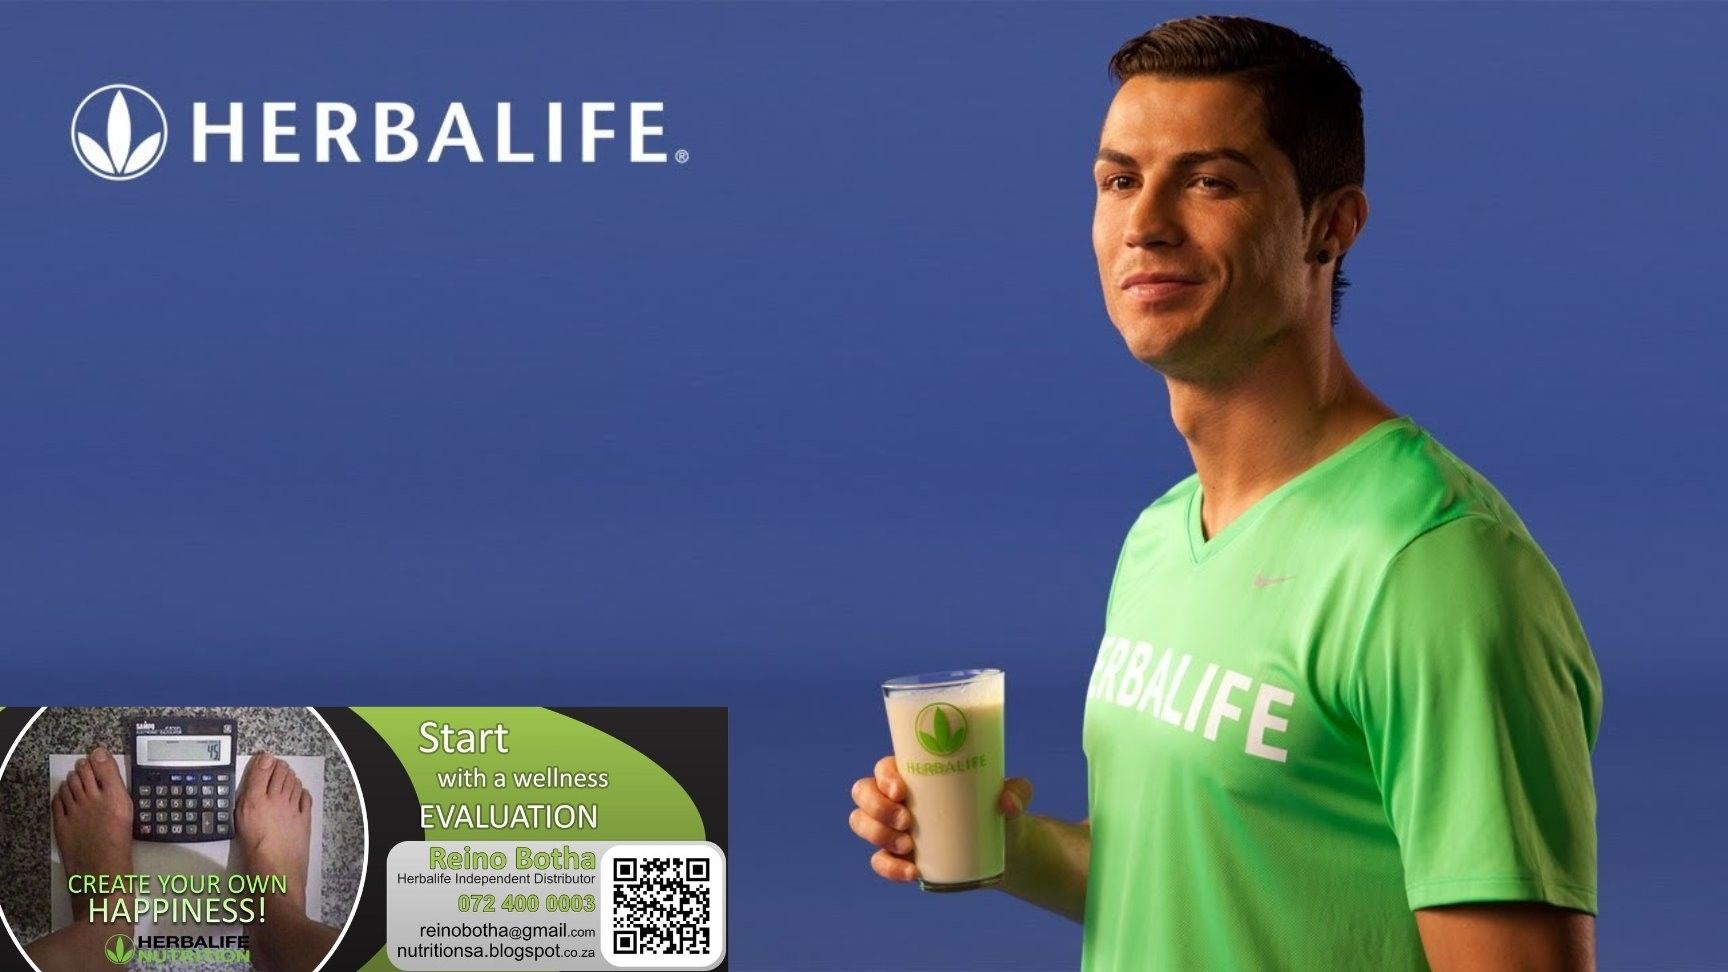 If its good enough for the best soccer player in the world